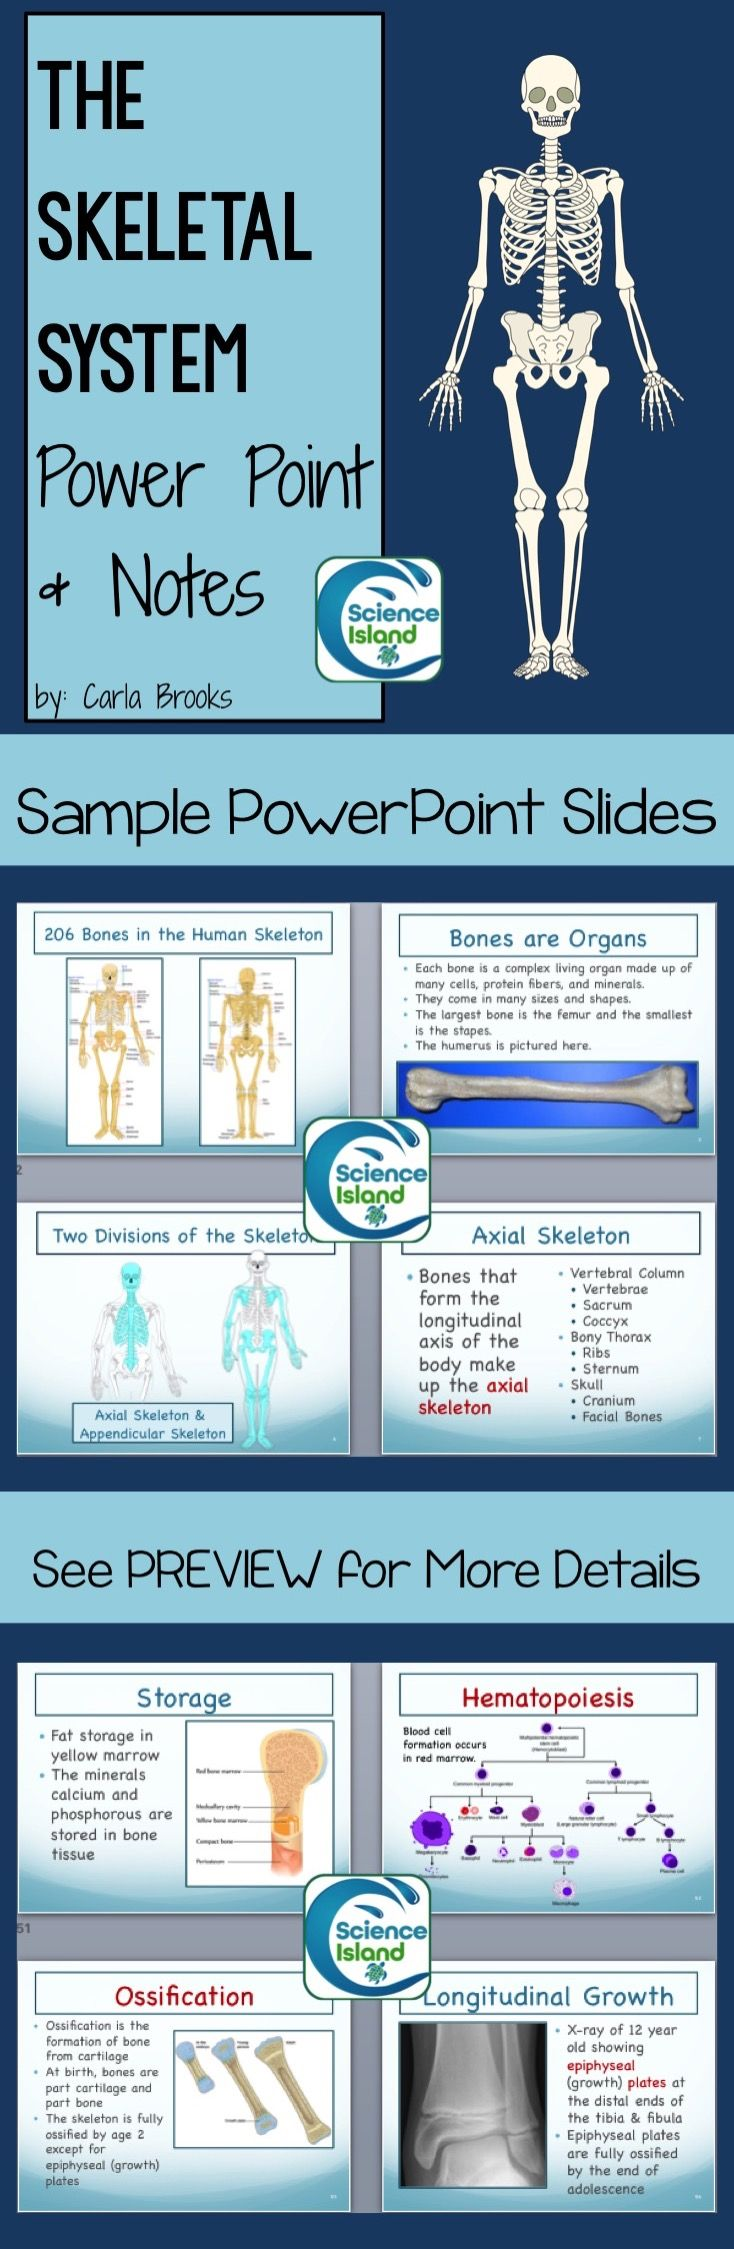 This Skeletal System PowerPoint presentation, with over 65 slides full of high quality photographs and illustrations, conveys essential vocabulary and concepts of the human skeletal system. Designed for a high school or introductory college level anatomy and physiology course, this presentation is intended as a supplement to any A & P textbook, but it is comprehensive enough to be used alone.